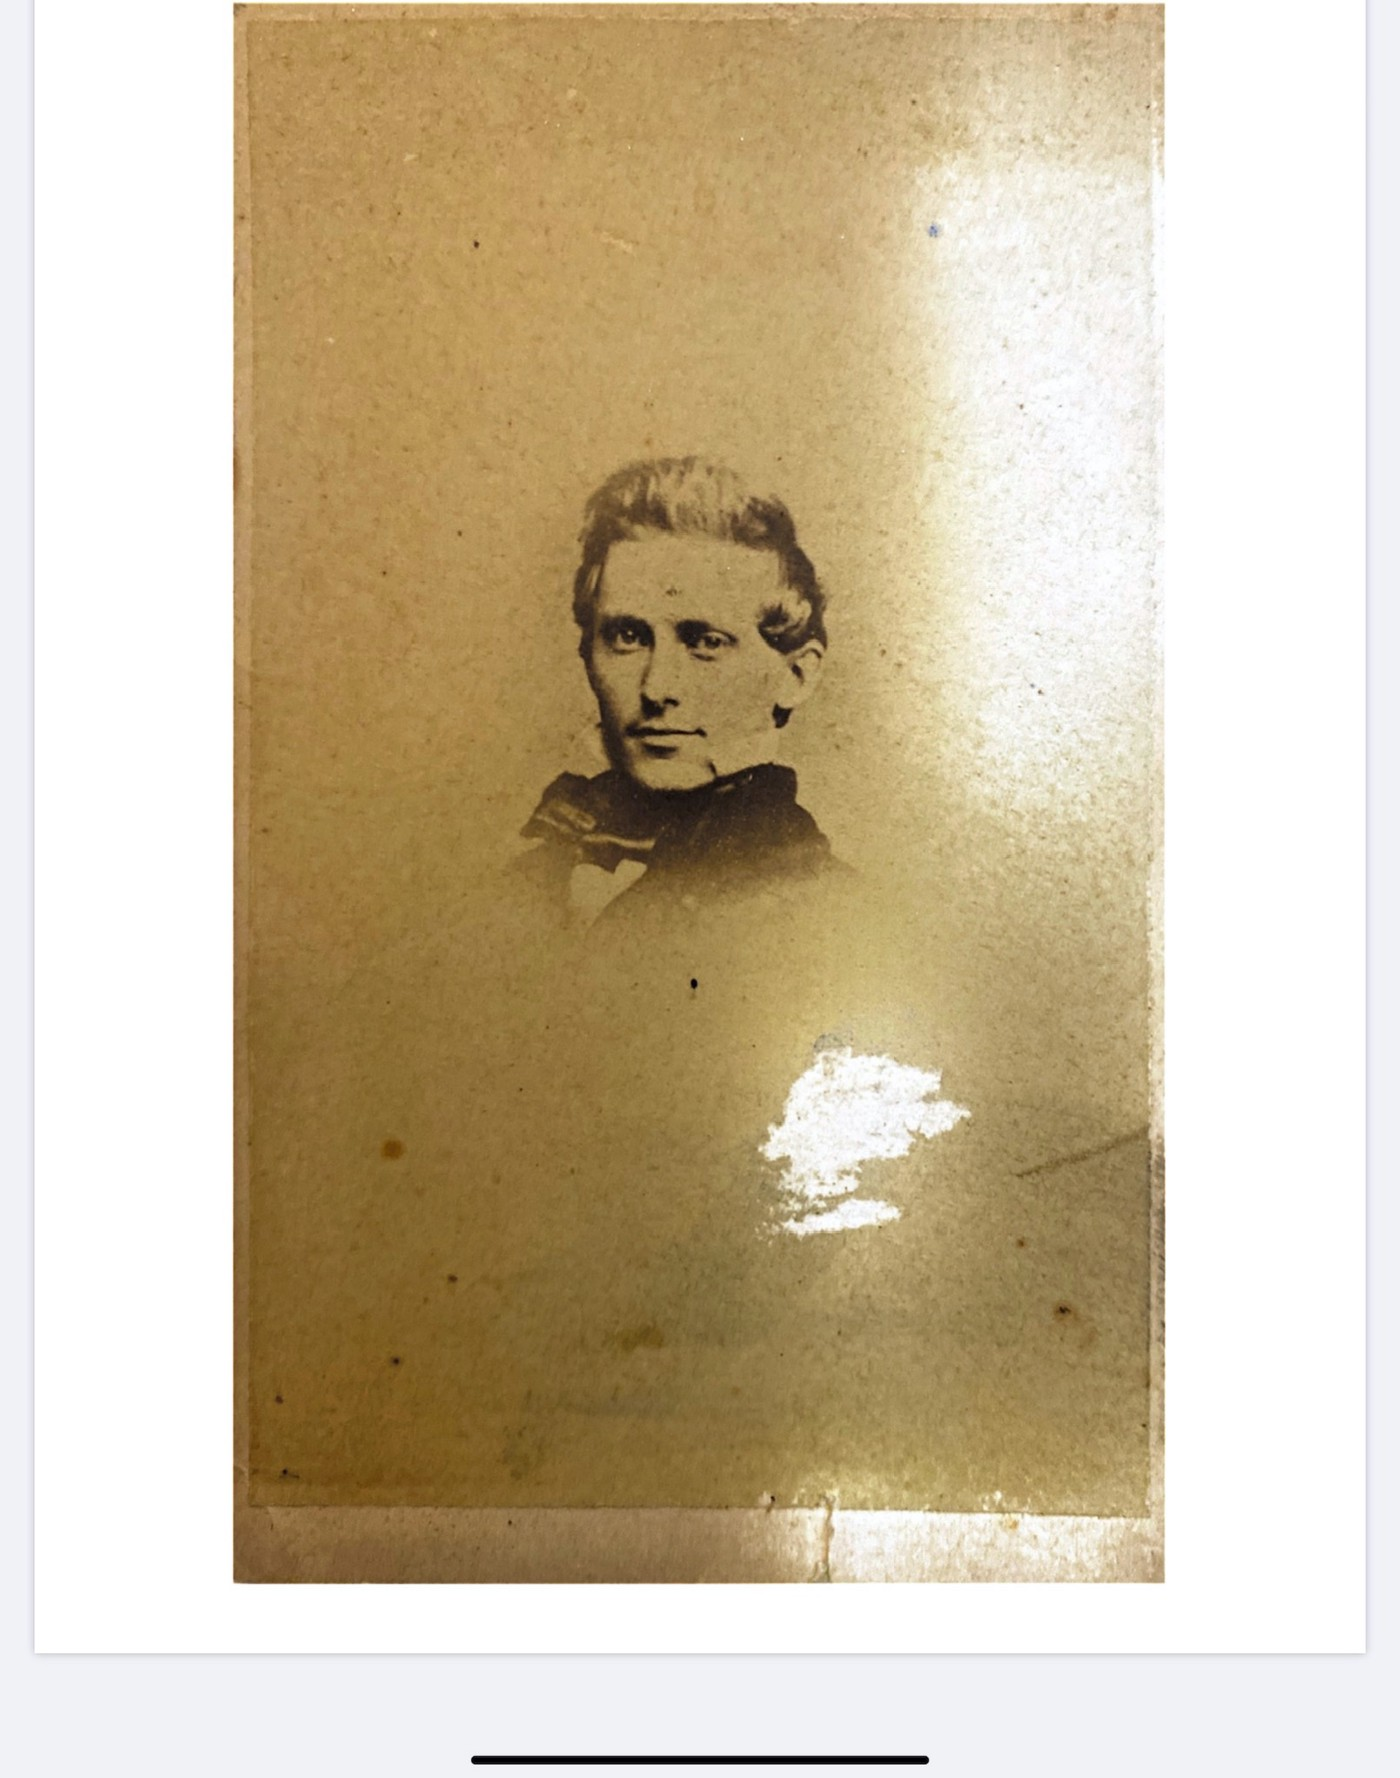 Family Photo of my paternal great-great-grandfather